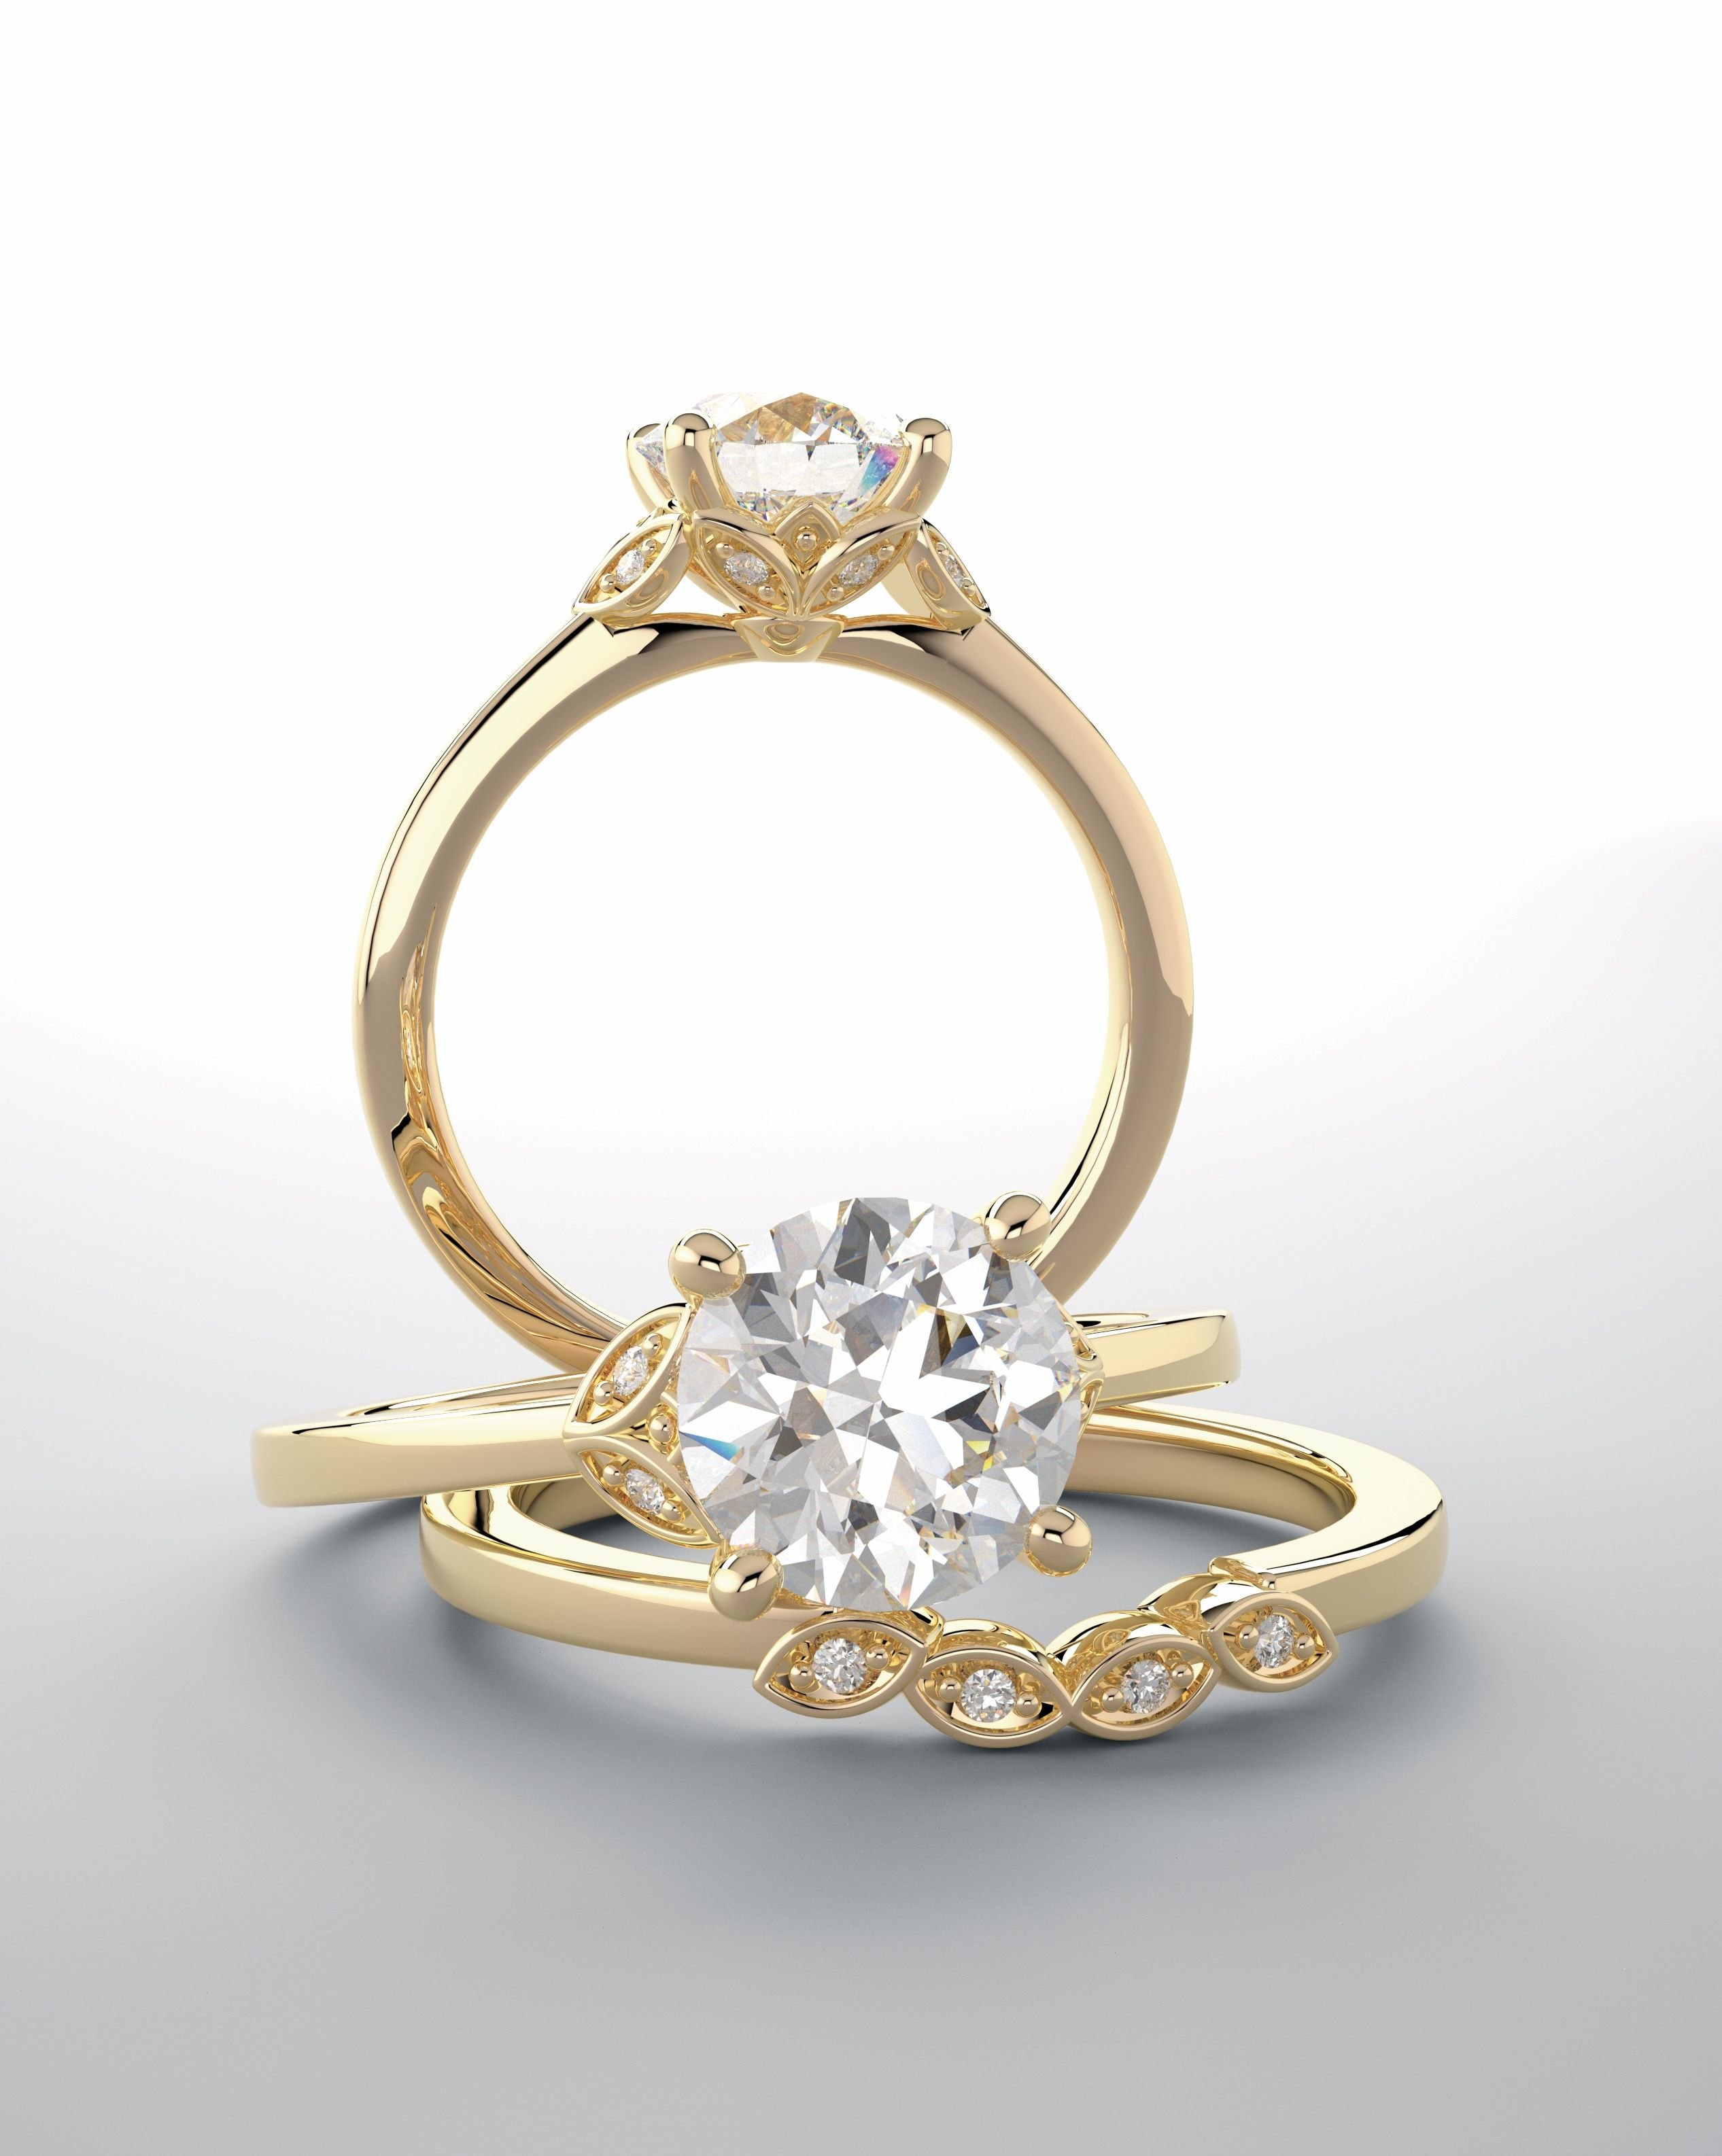 11+ Jewelry stores that sell lab created diamonds ideas in 2021